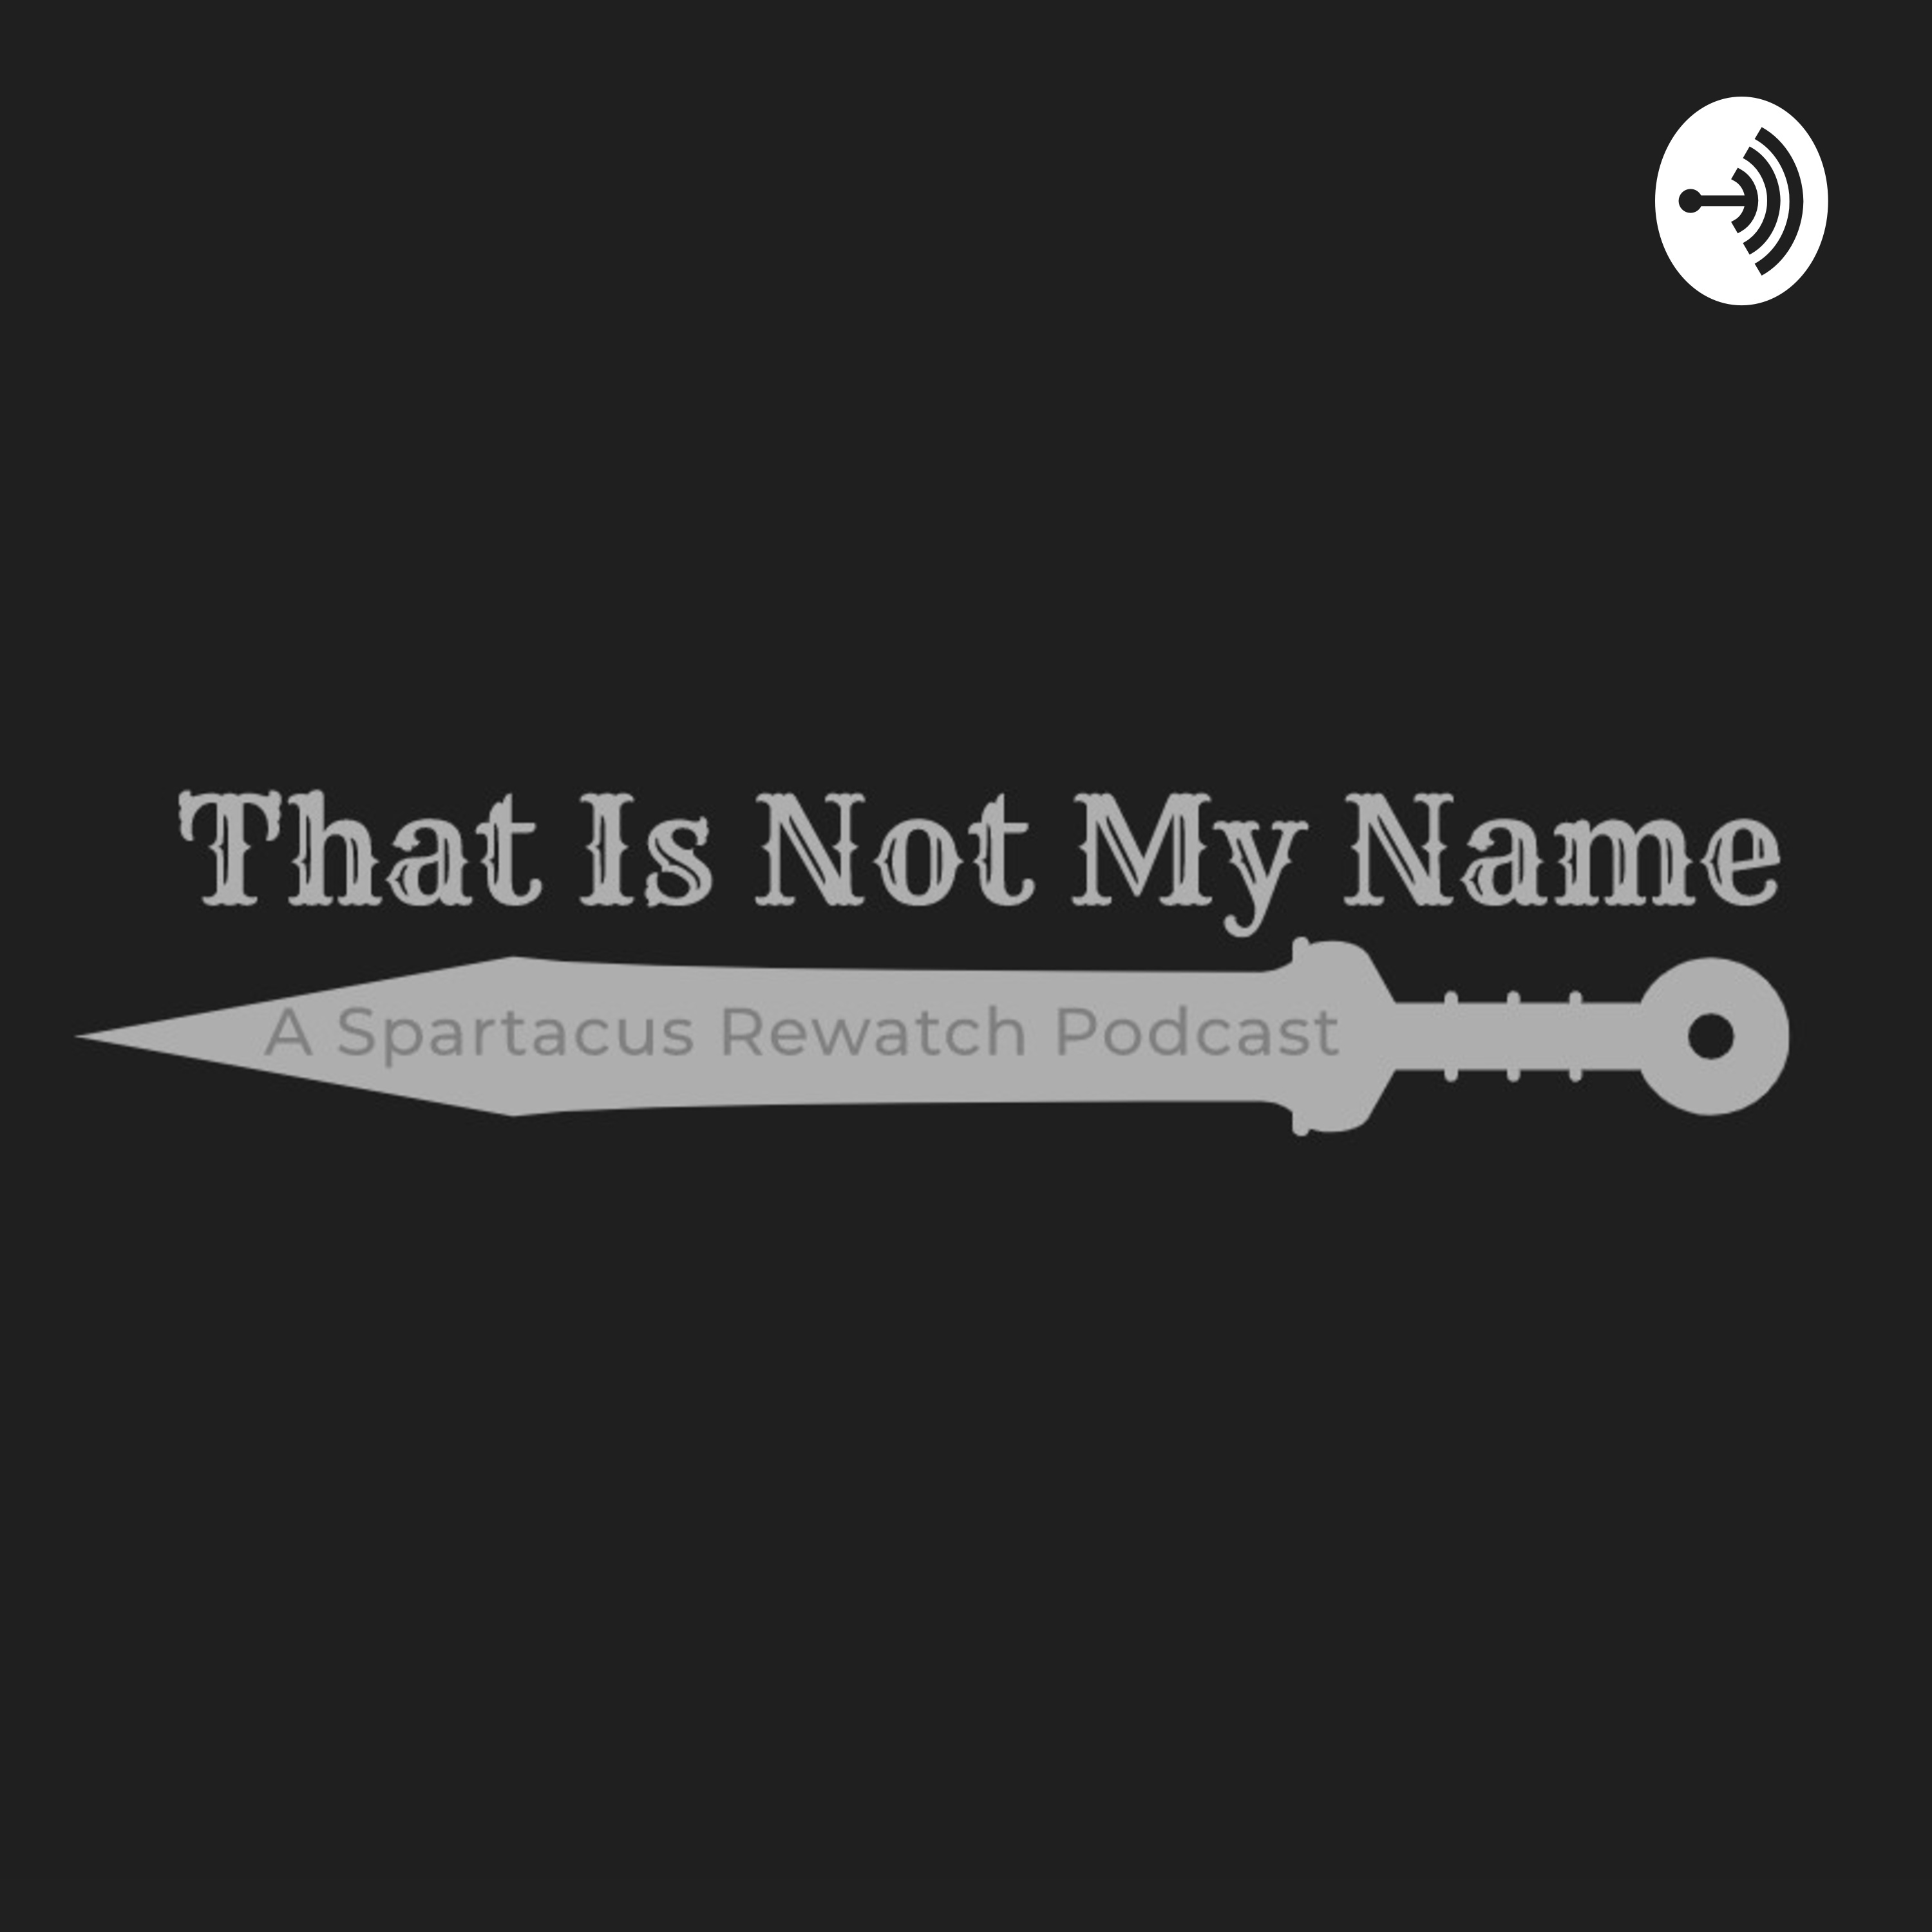 That Is Not My Name: A Spartacus Rewatch Podcast